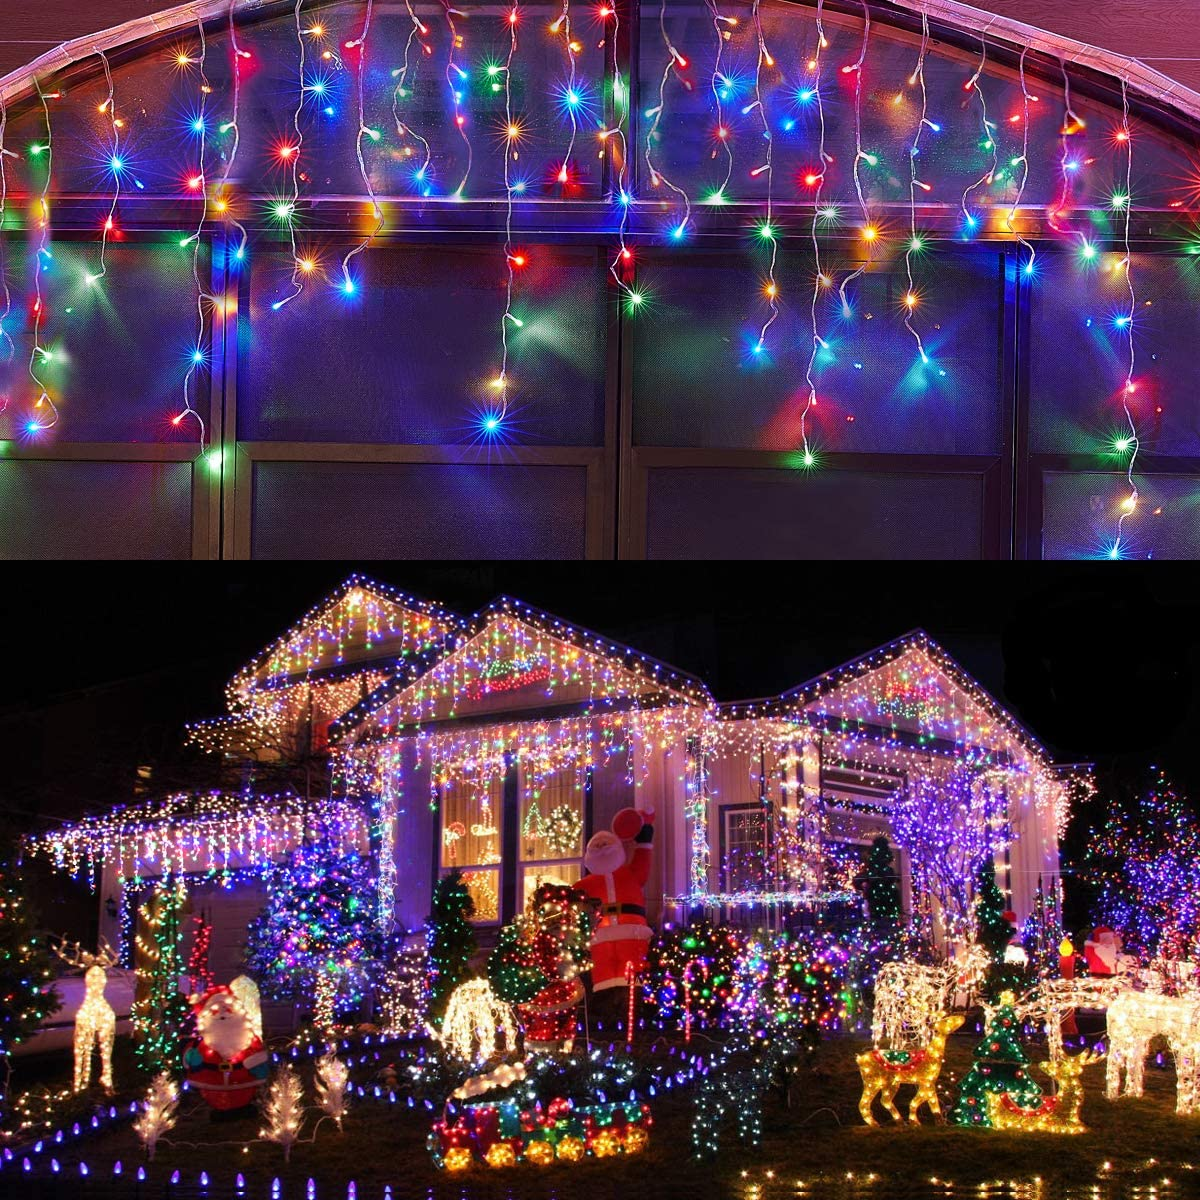 Led Icicle Lights Outdoor Christmas Decorations Lights 400LED 8 Modes Icicle Christmas Lights, Outdoor Fairy String Lights for Party, Holiday, Wedding Decorations Multicolor